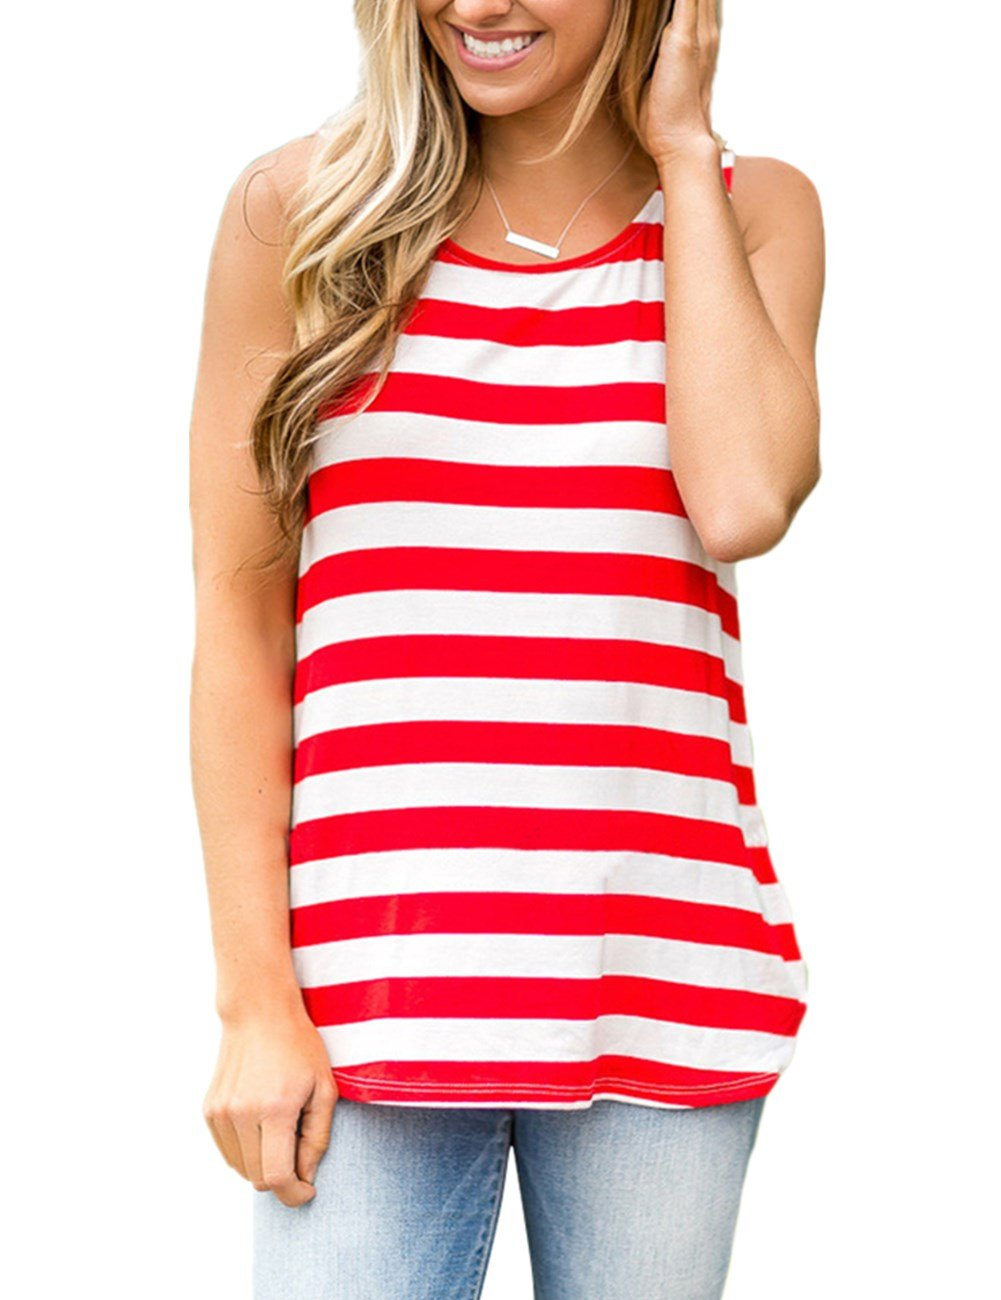 YOUCOO Women T-Shirt Sleeveless Summer Tank Tops Red Striped Blouse